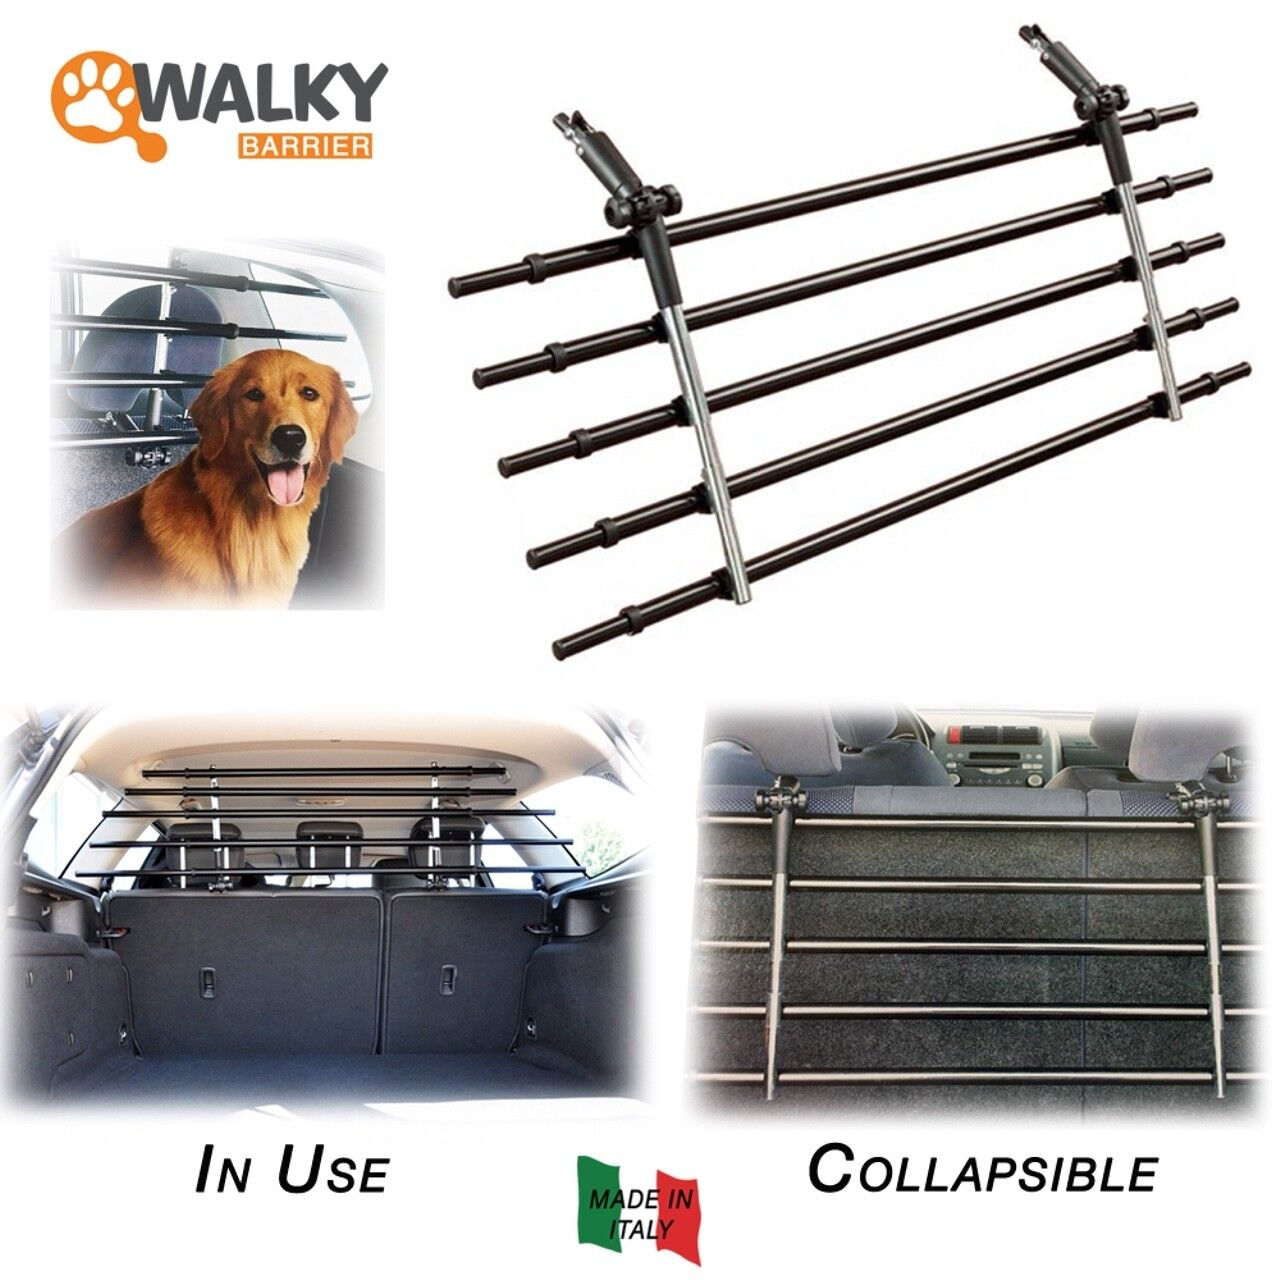 Walky Barrier Folding Universal Auto Pet Safety Barrier Pet Safety Car Fence